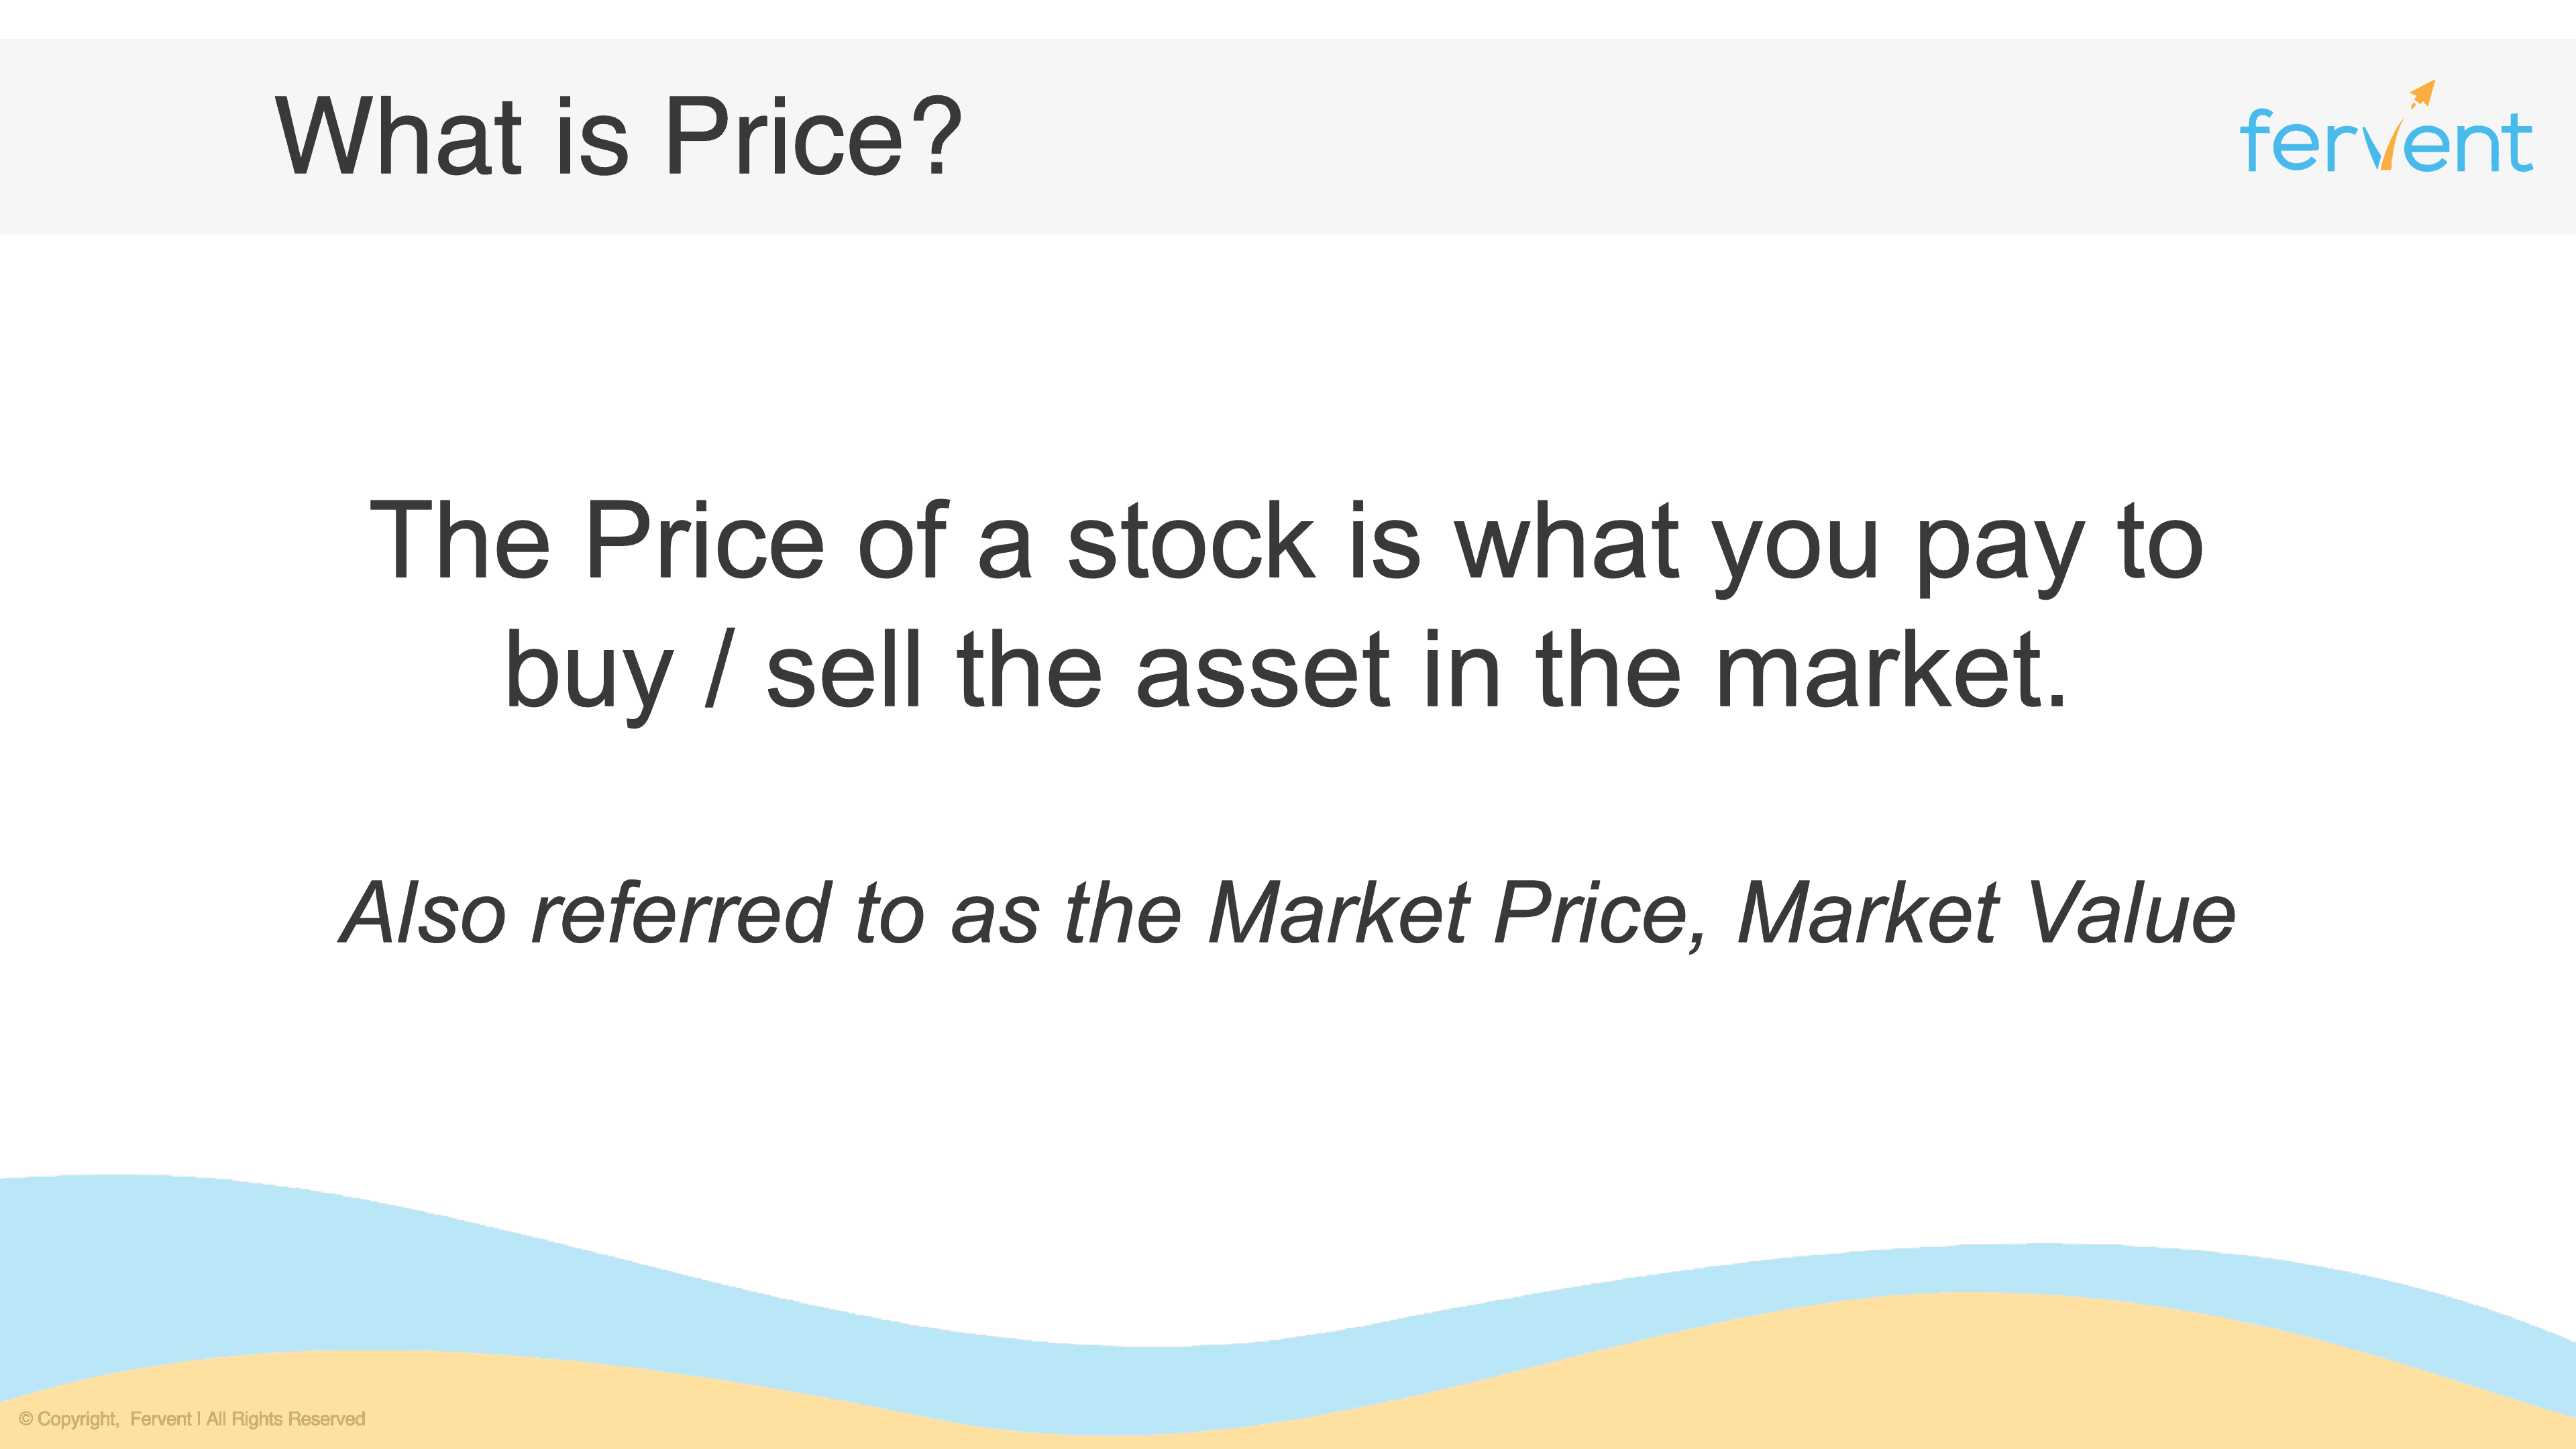 Slide explaining what Price is in the context of investment fundamentals